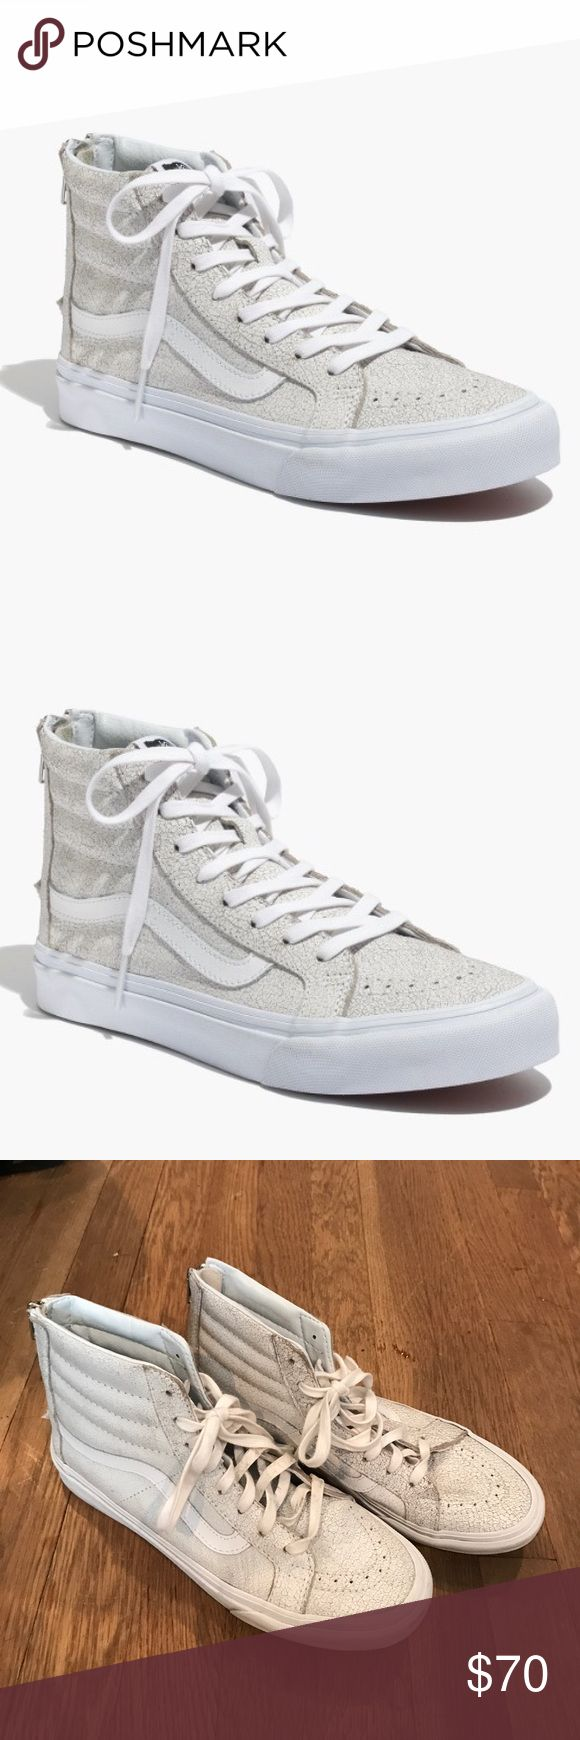 Madewell Vans Hi Slim Zip Crackle Suede White Great shoes for skateboarding or just hangin out. Look so cute with a dress. Worn less than 5 times. Minimal wear on the rubber, right shoe lace is a little dirty but could be replaced/ washed. Men's 8.5 Vans Shoes Sneakers